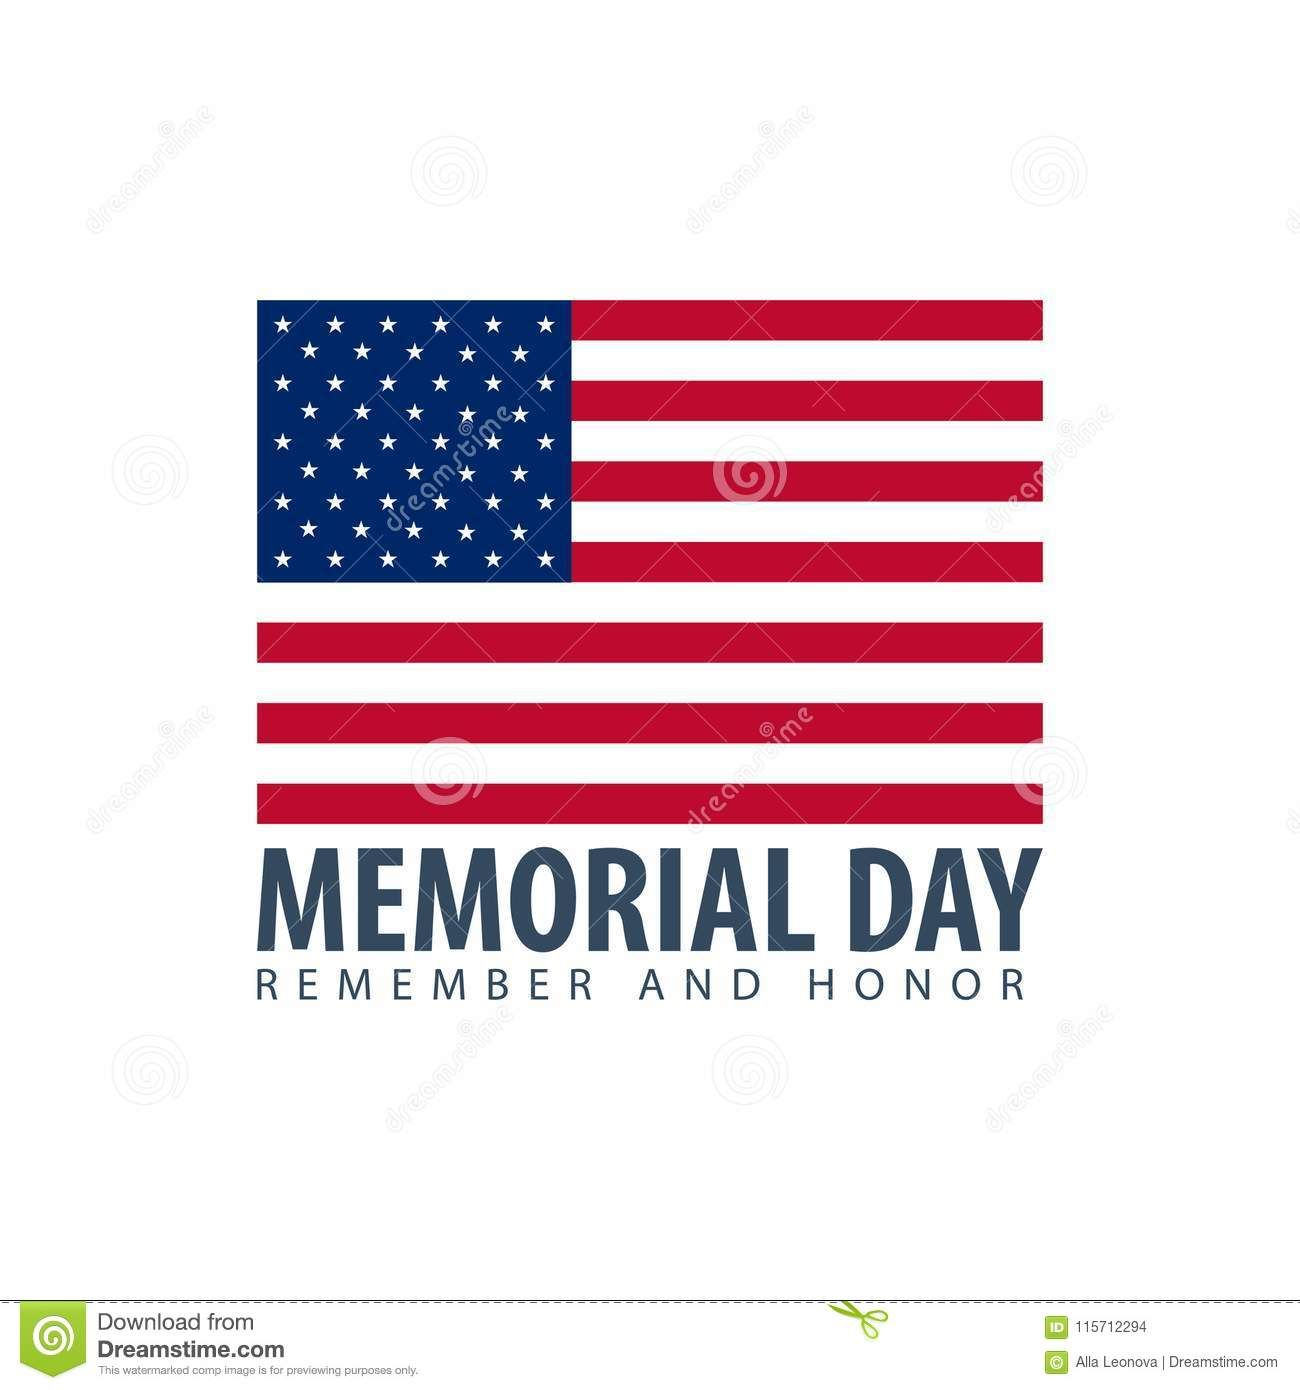 Memorial Day Remember And Honor Usa American Flag Blue Greeting Memorial Day American Flag Memories